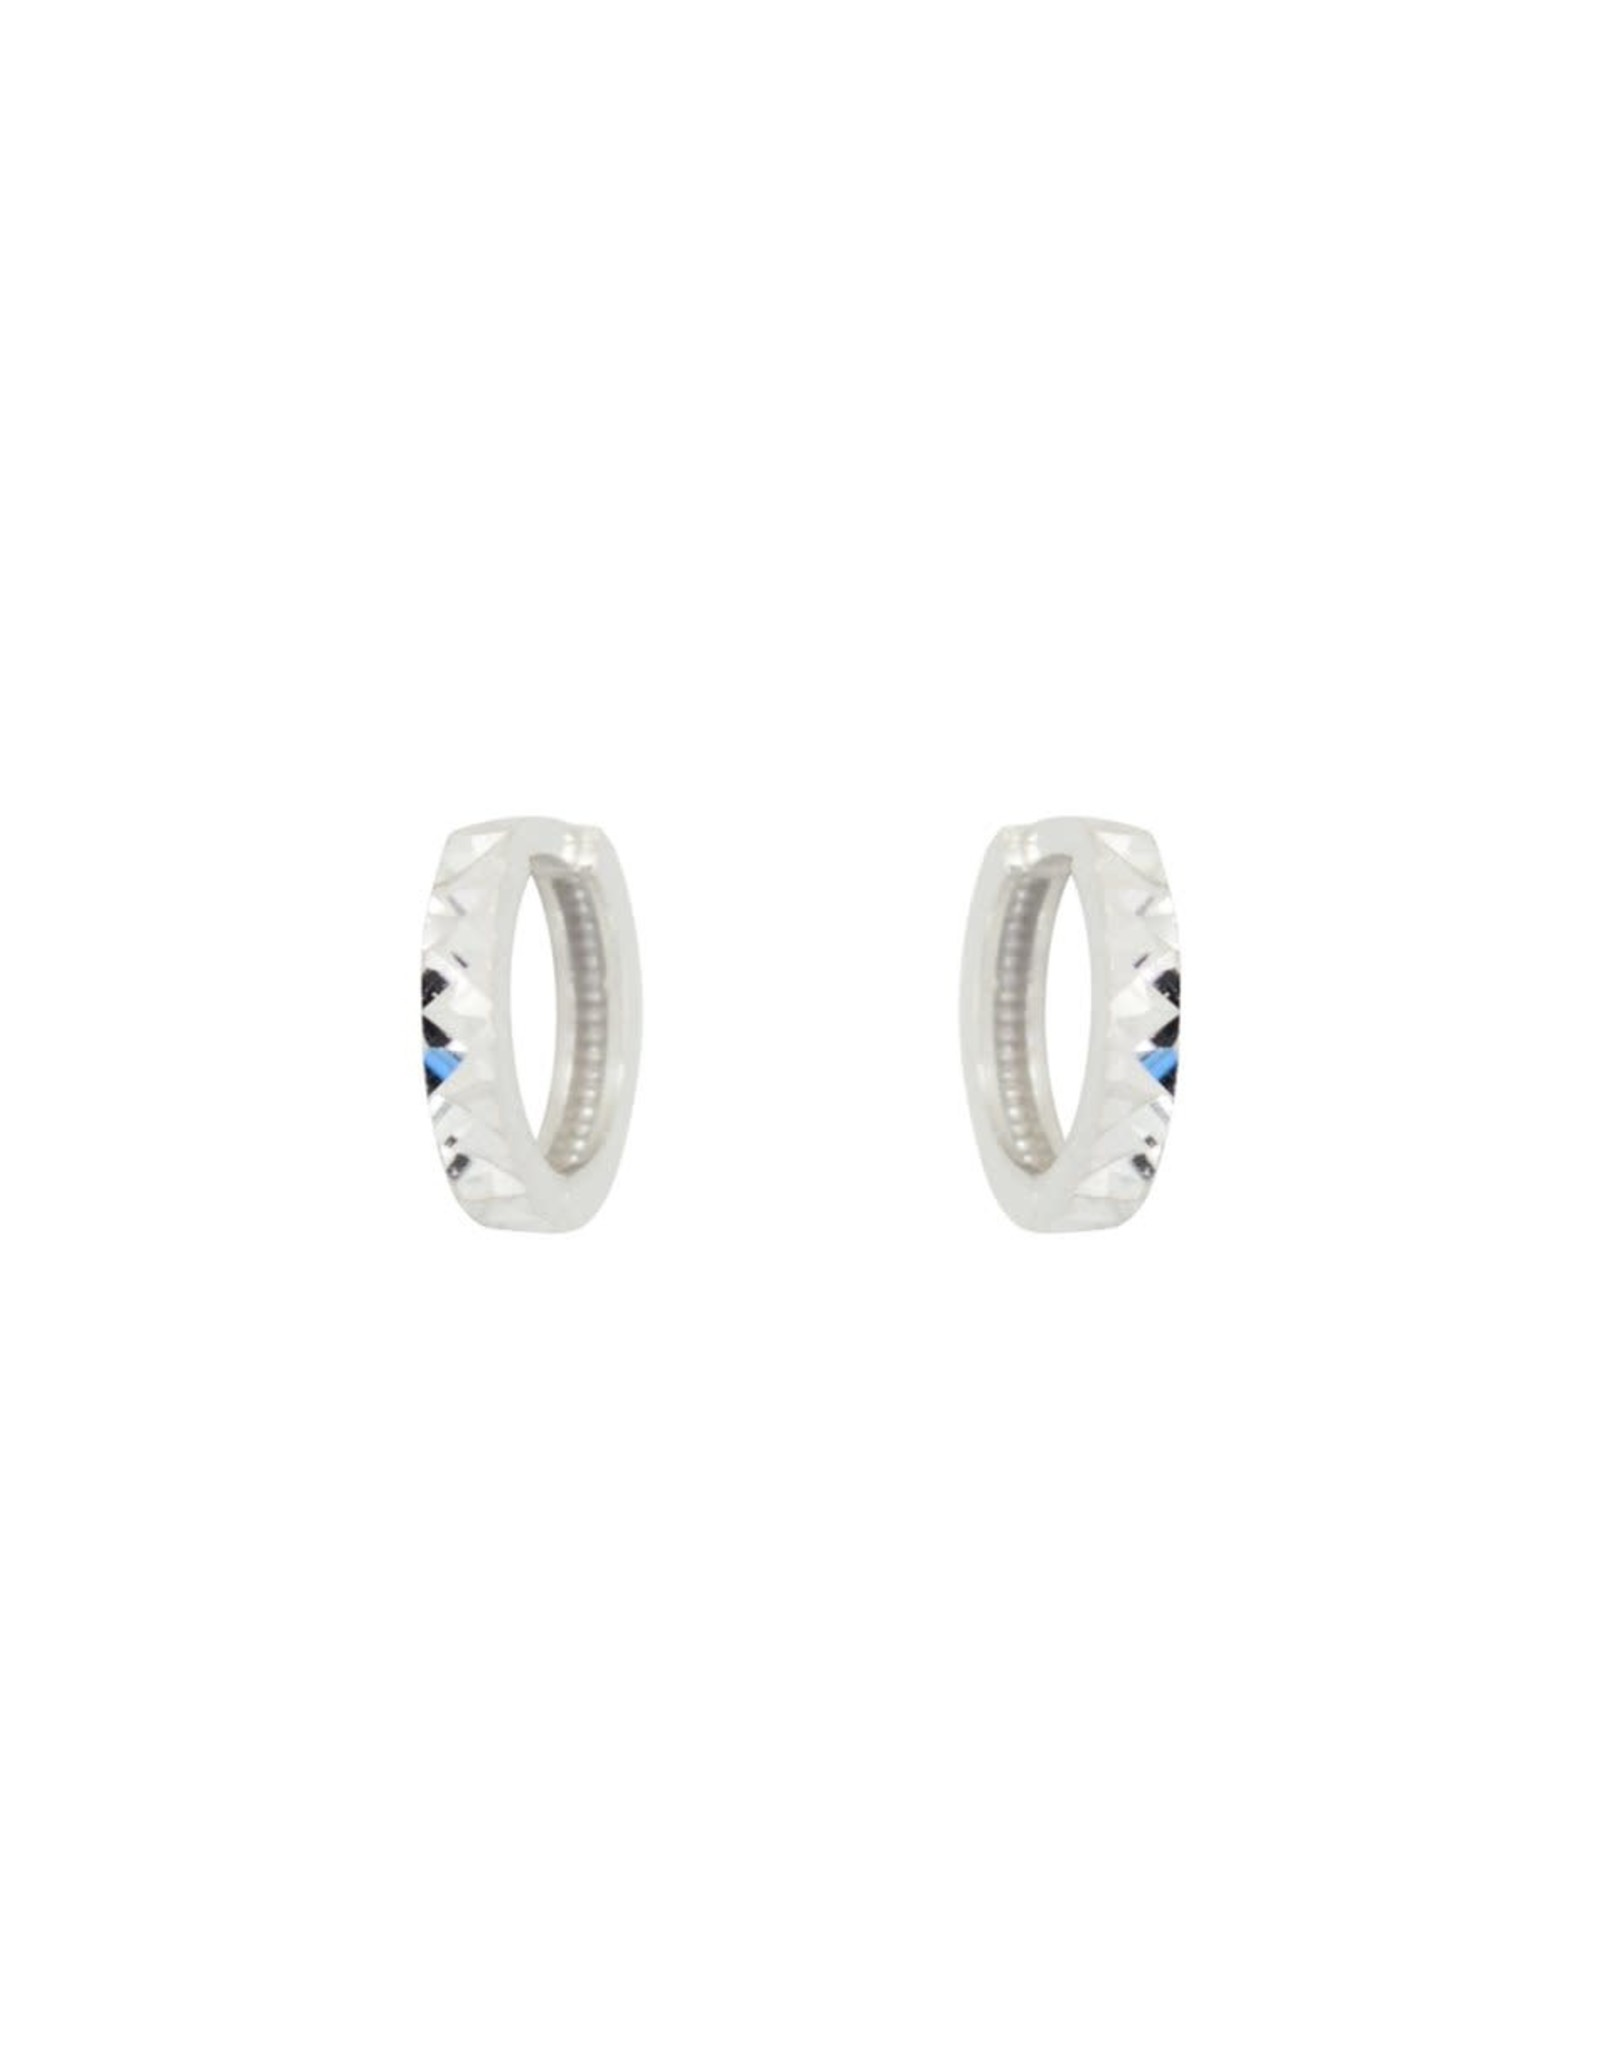 PARÉ Boucles d'oreille Huggies Enfant  Or blanc 10k